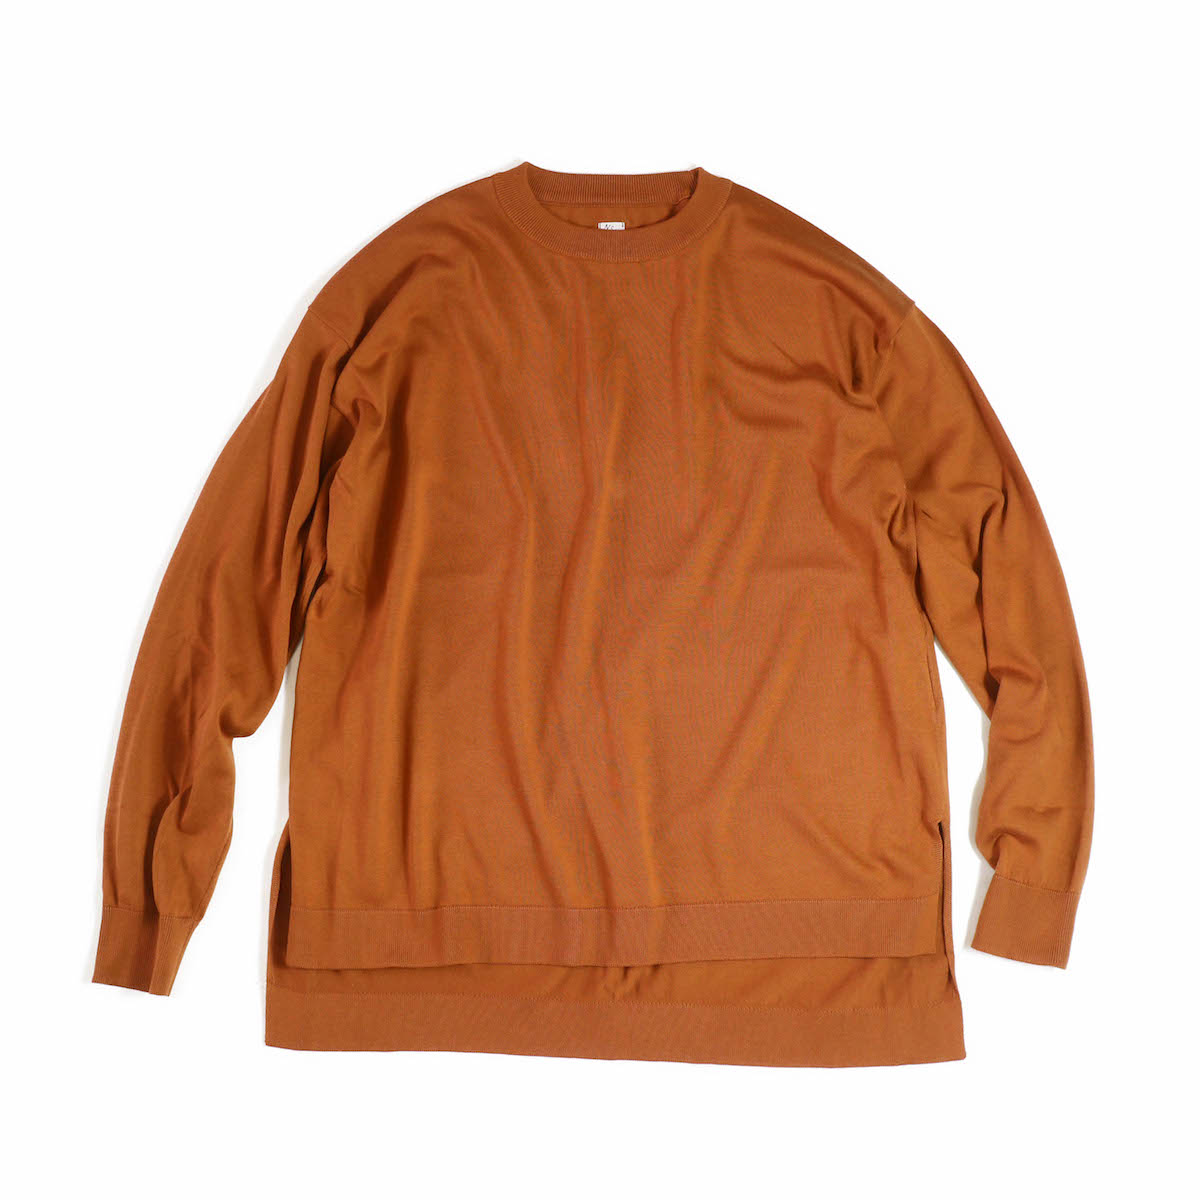 KAPTAIN SUNSHINE / Crewneck Long Sleeved Puollover Knit -OrangeBrown